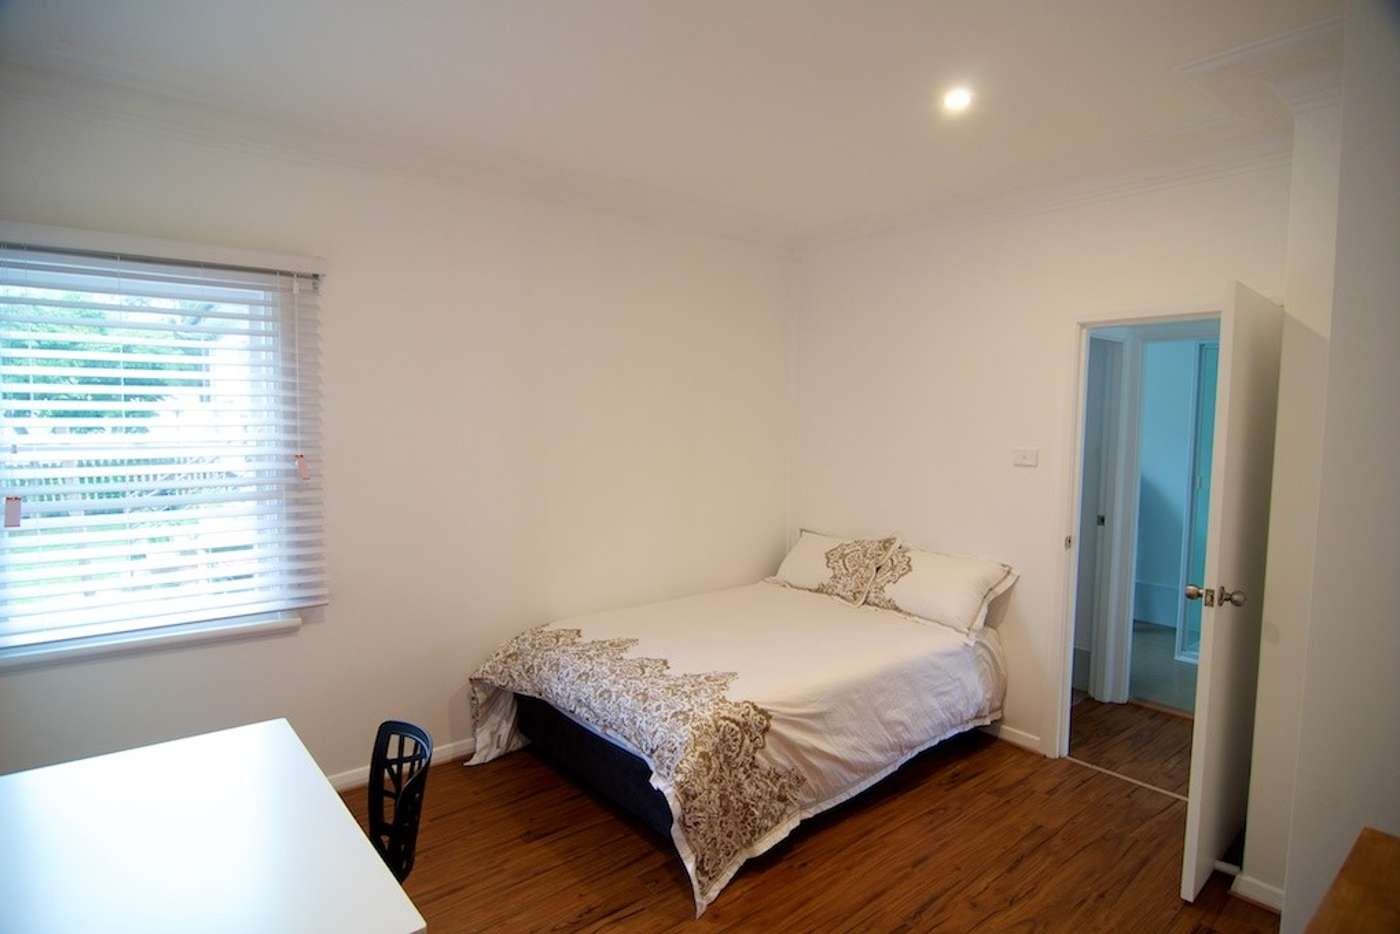 Seventh view of Homely house listing, 64 Moore Street, Birmingham Gardens NSW 2287